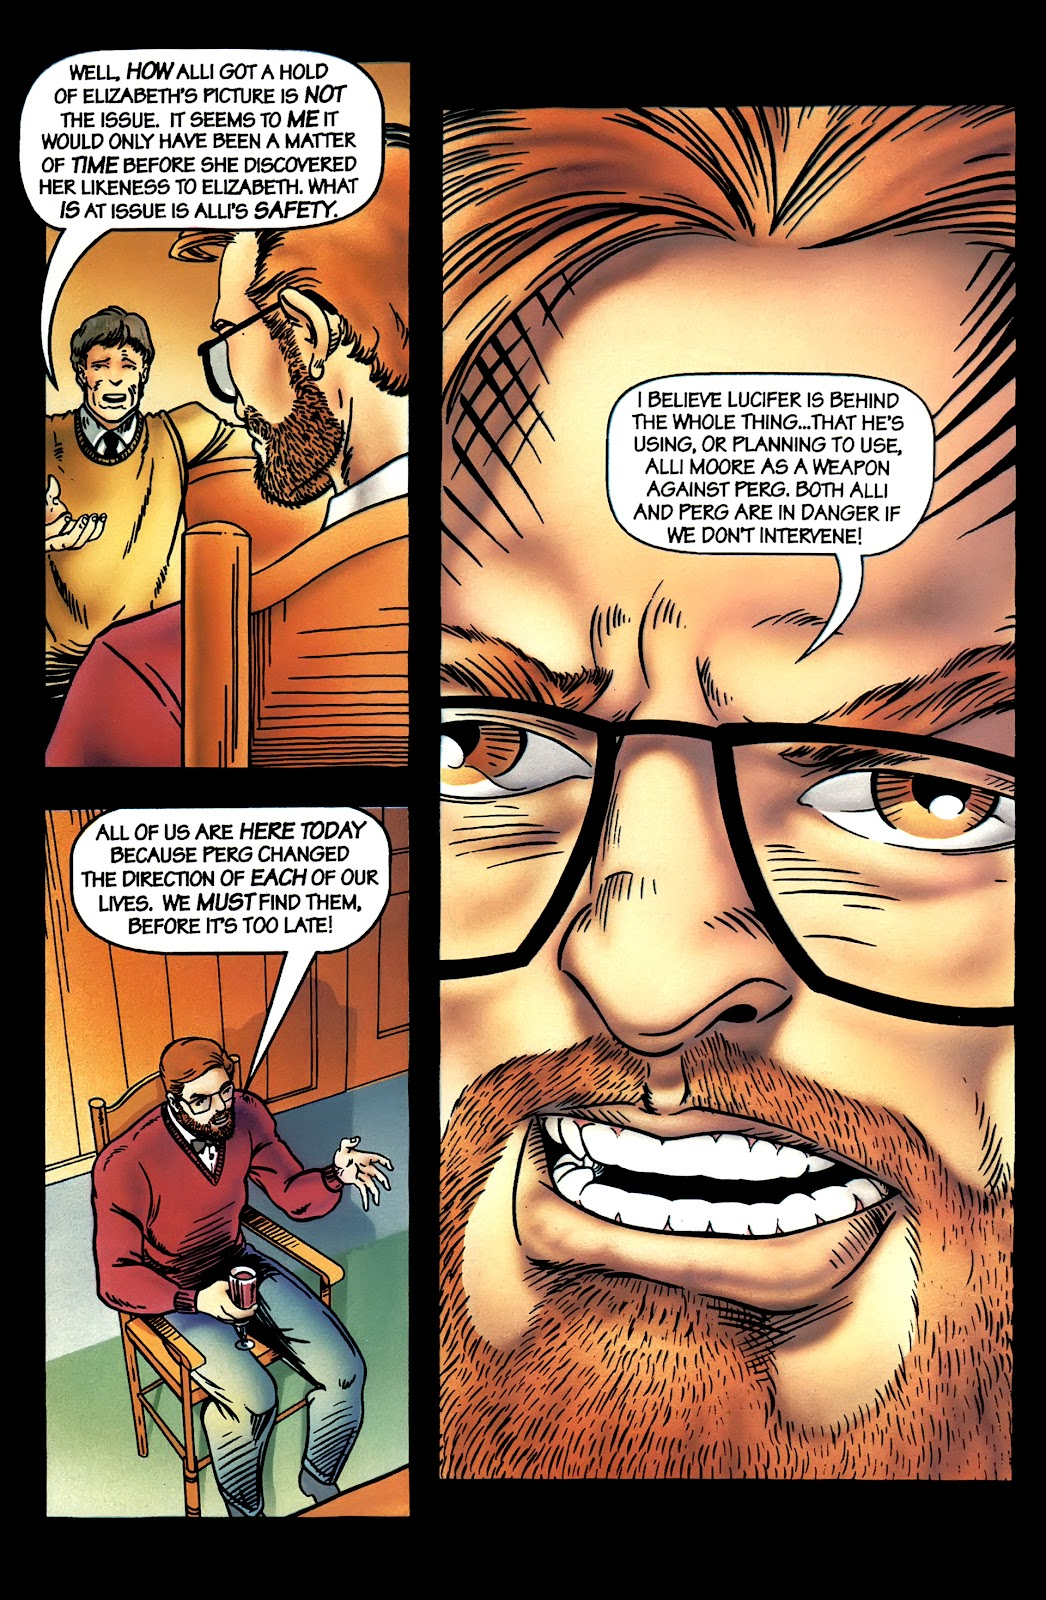 Read online Perg comic -  Issue #4 - 20